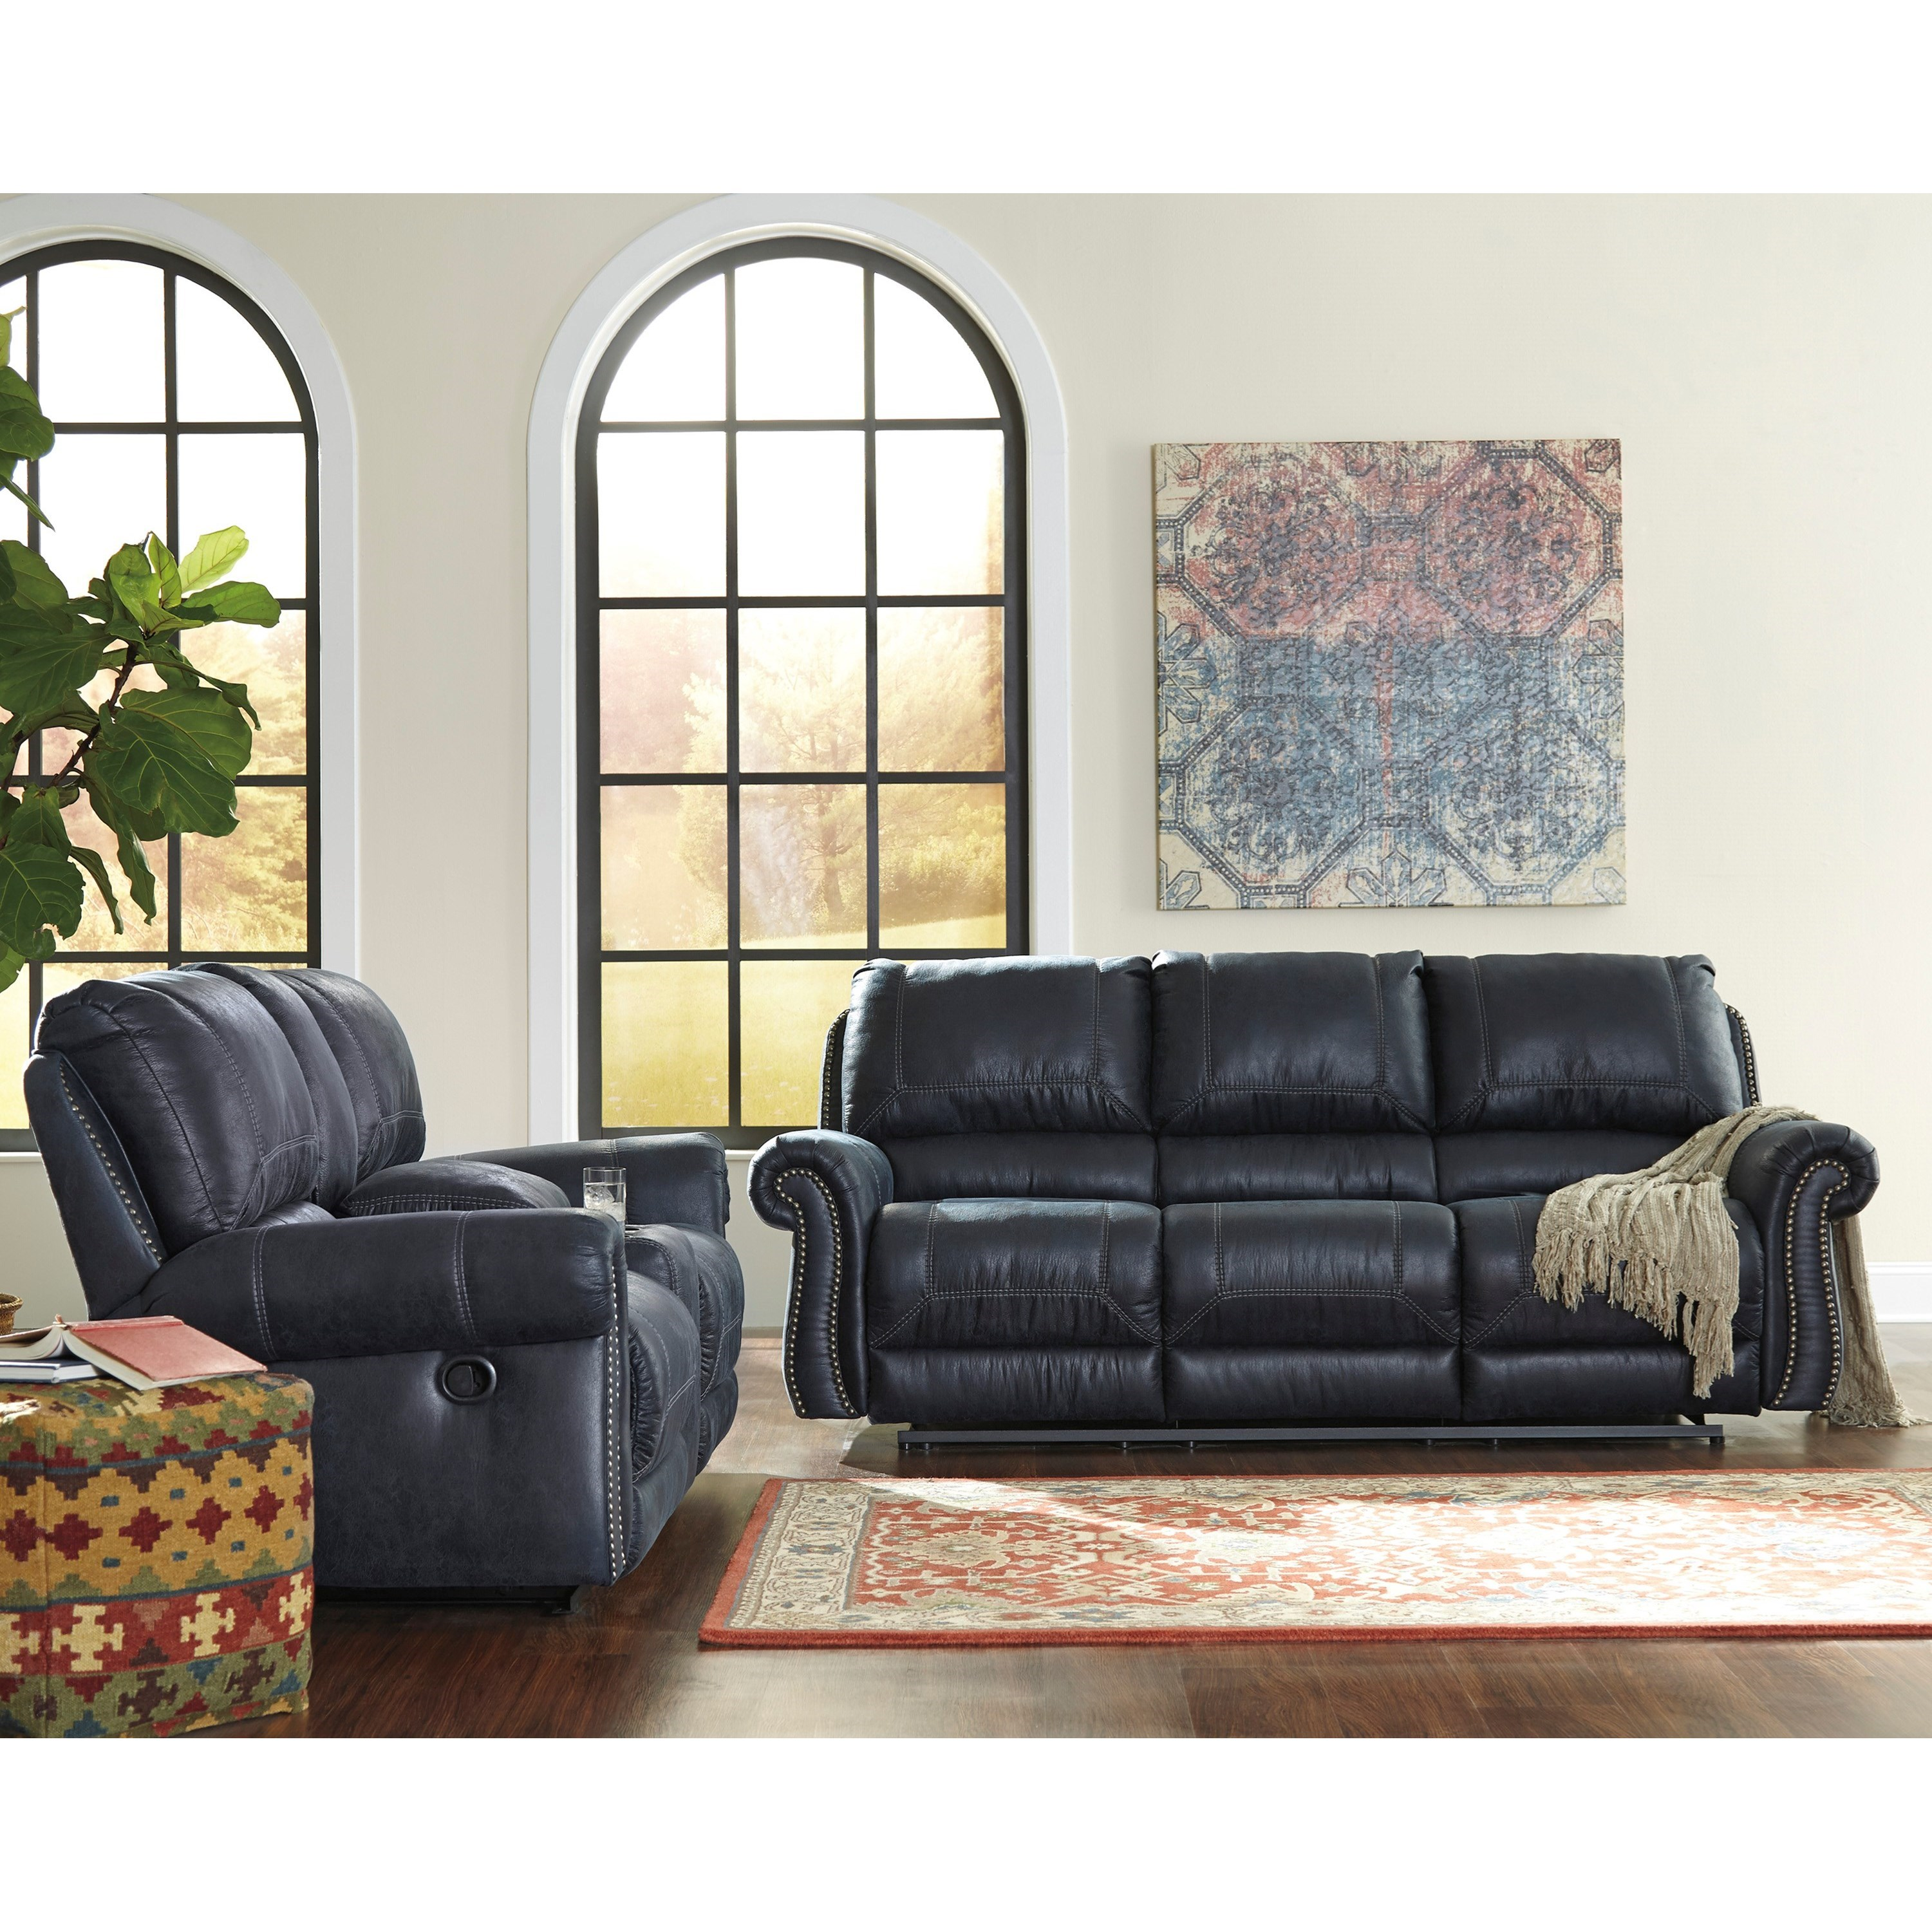 Signature Design By Ashley Milhaven Reclining Living Room Group Royal Furni